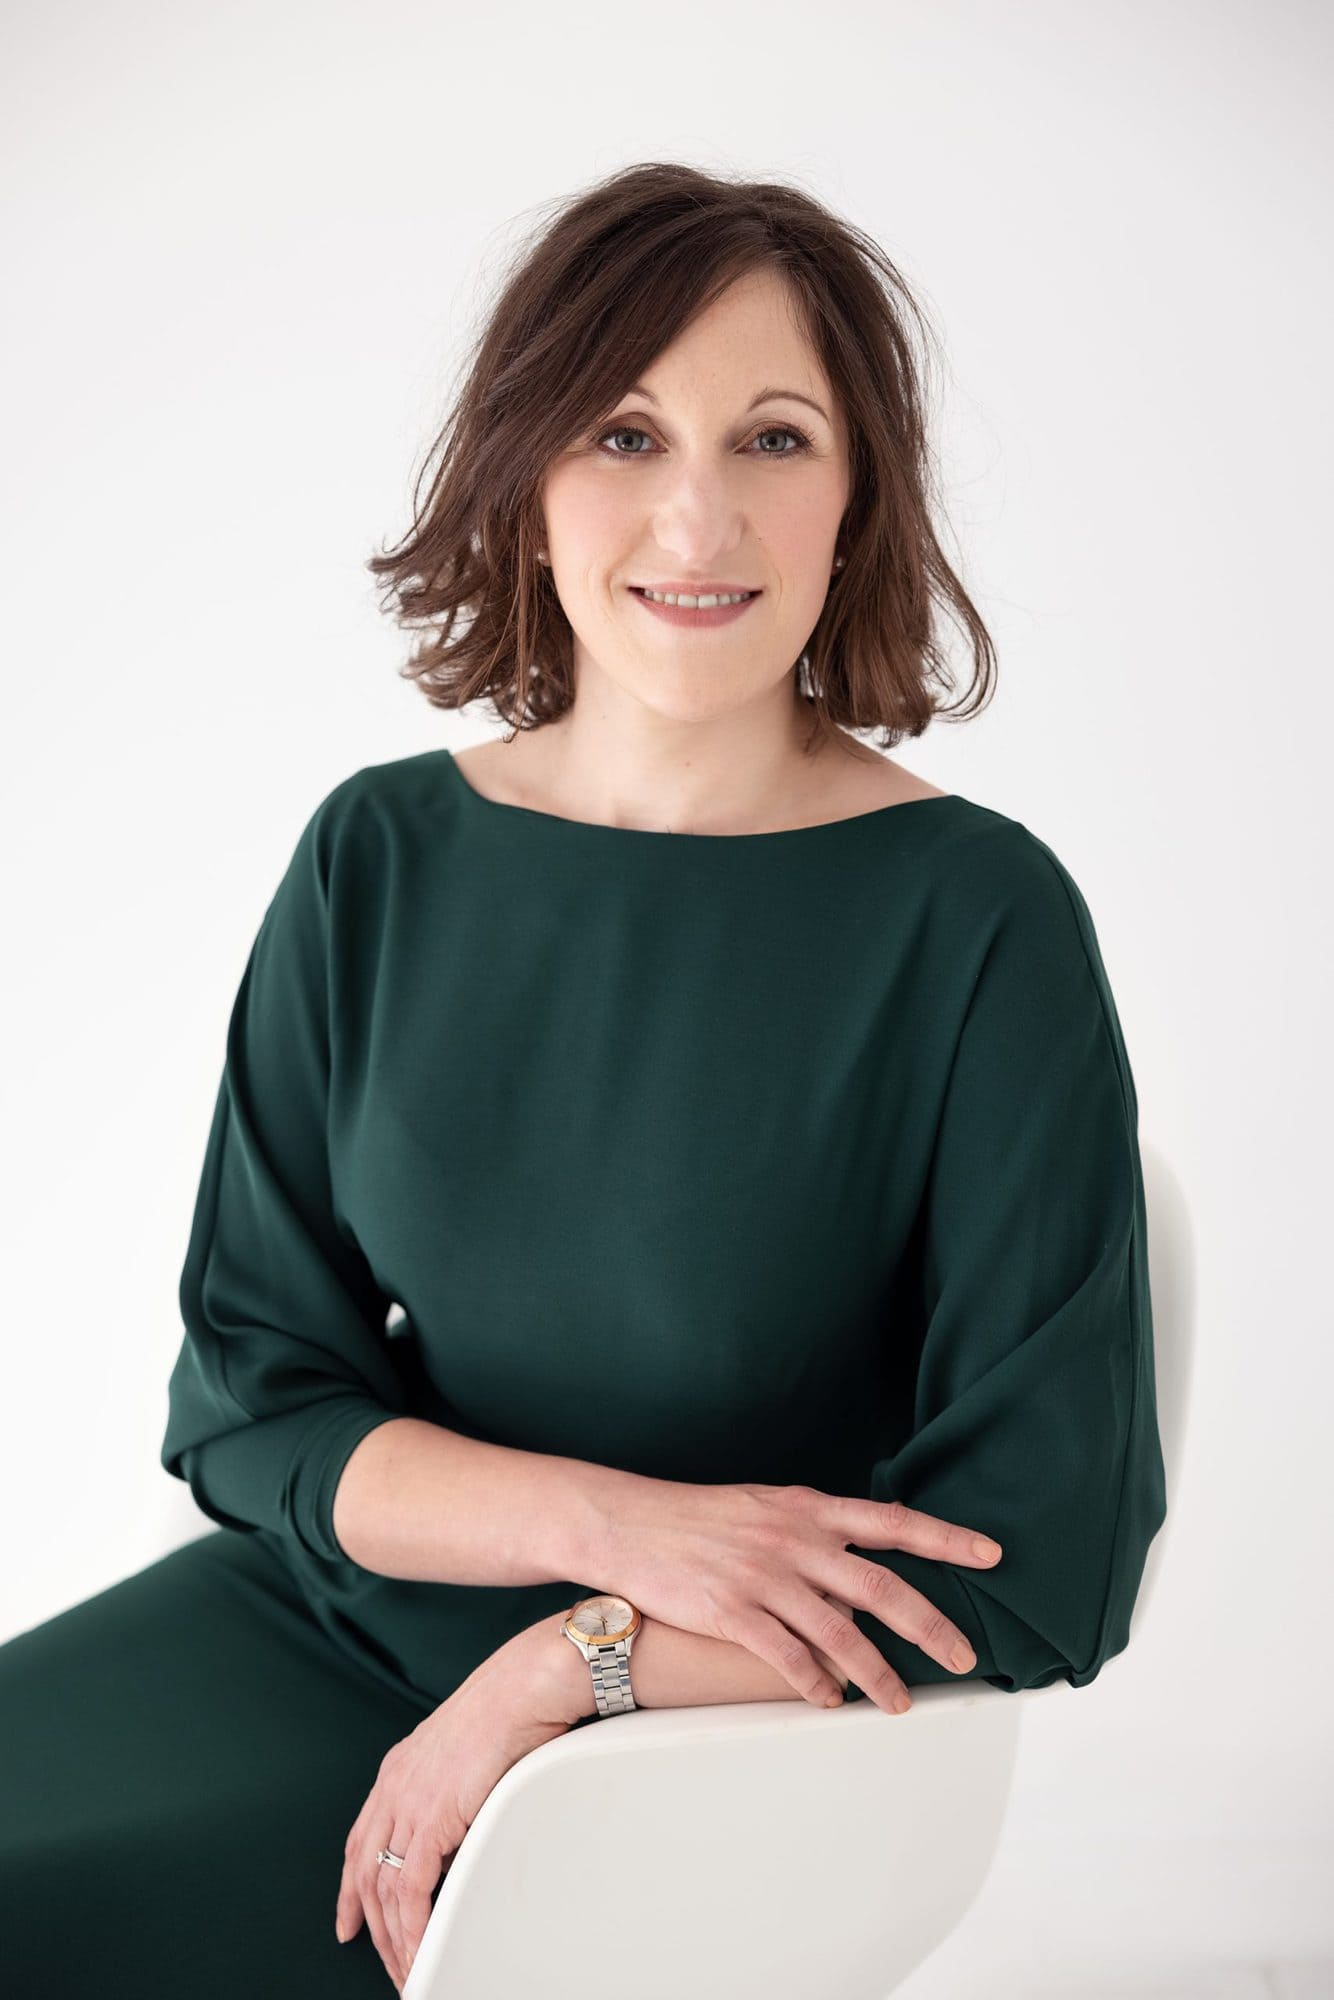 Woman in green dress sits on a white chair during her Personal Branding Photo shoot in Suffolk